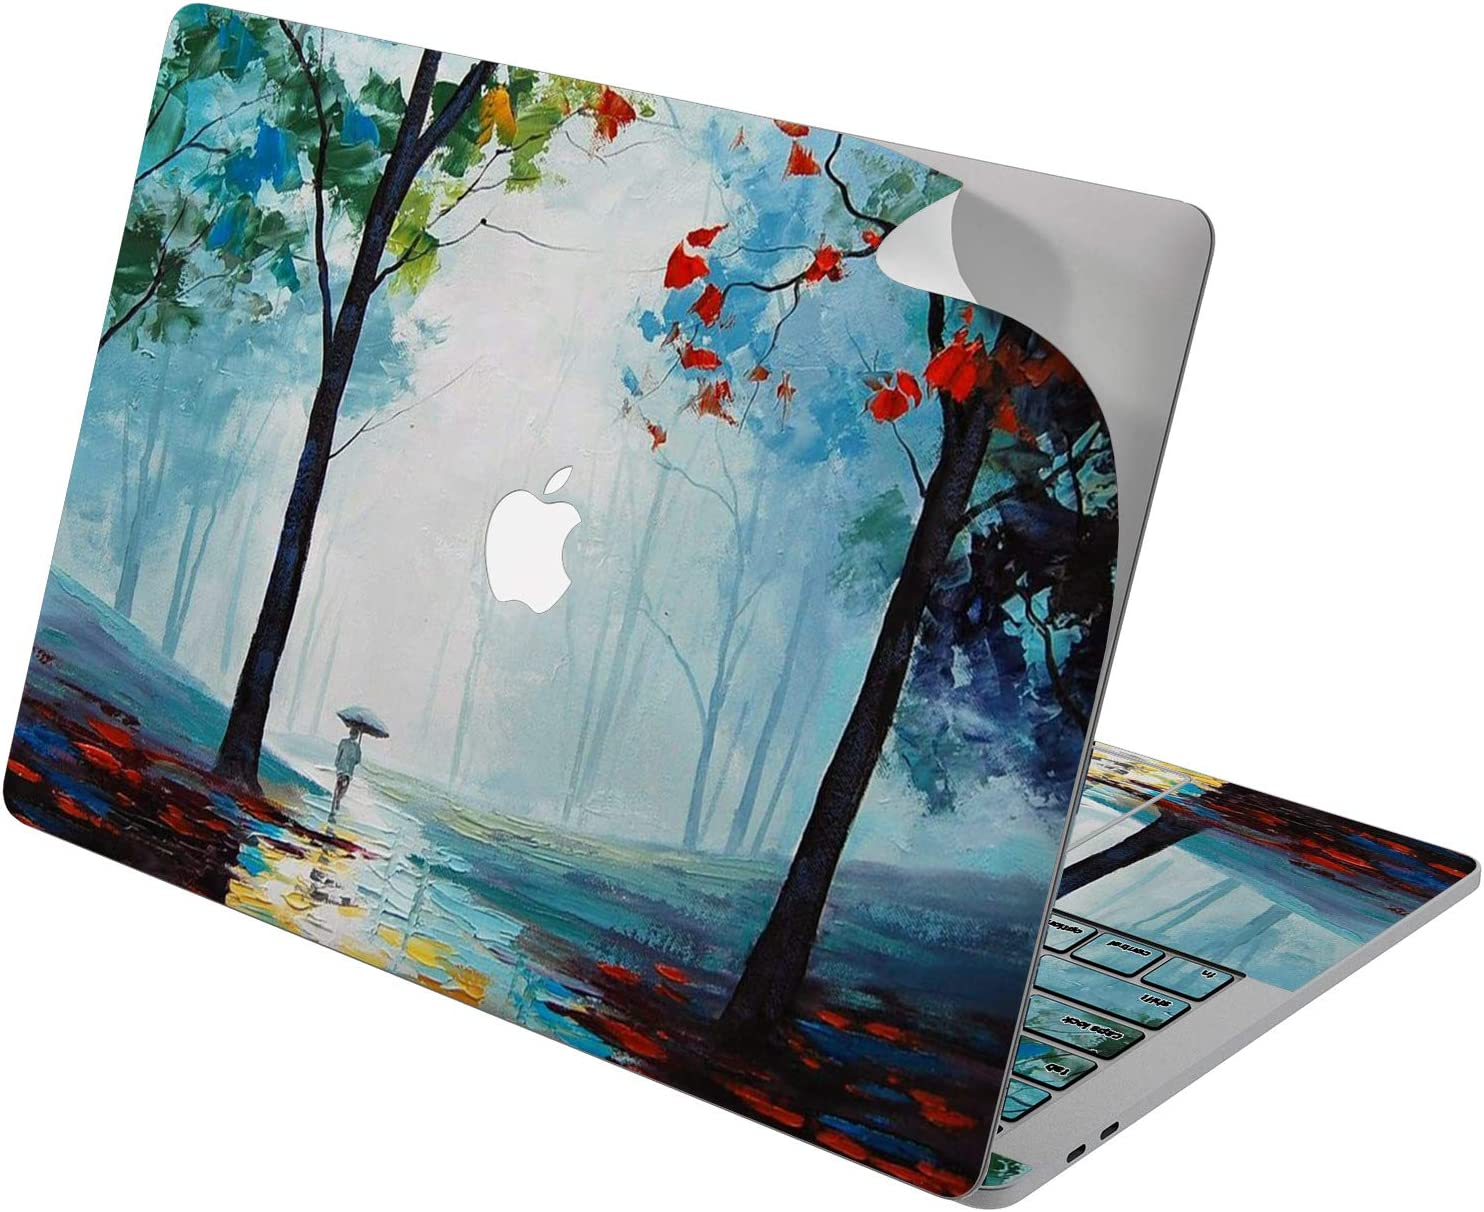 "Cavka Vinyl Decal Skin for Apple MacBook Pro 13"" 2019 15"" 2018 Air 13"" 2020 Retina 2015 Mac 11"" Mac 12"" Forest New Cover Painting Protective Print Laptop Blue Sticker Autumn Design Acrylic Walk Trees"